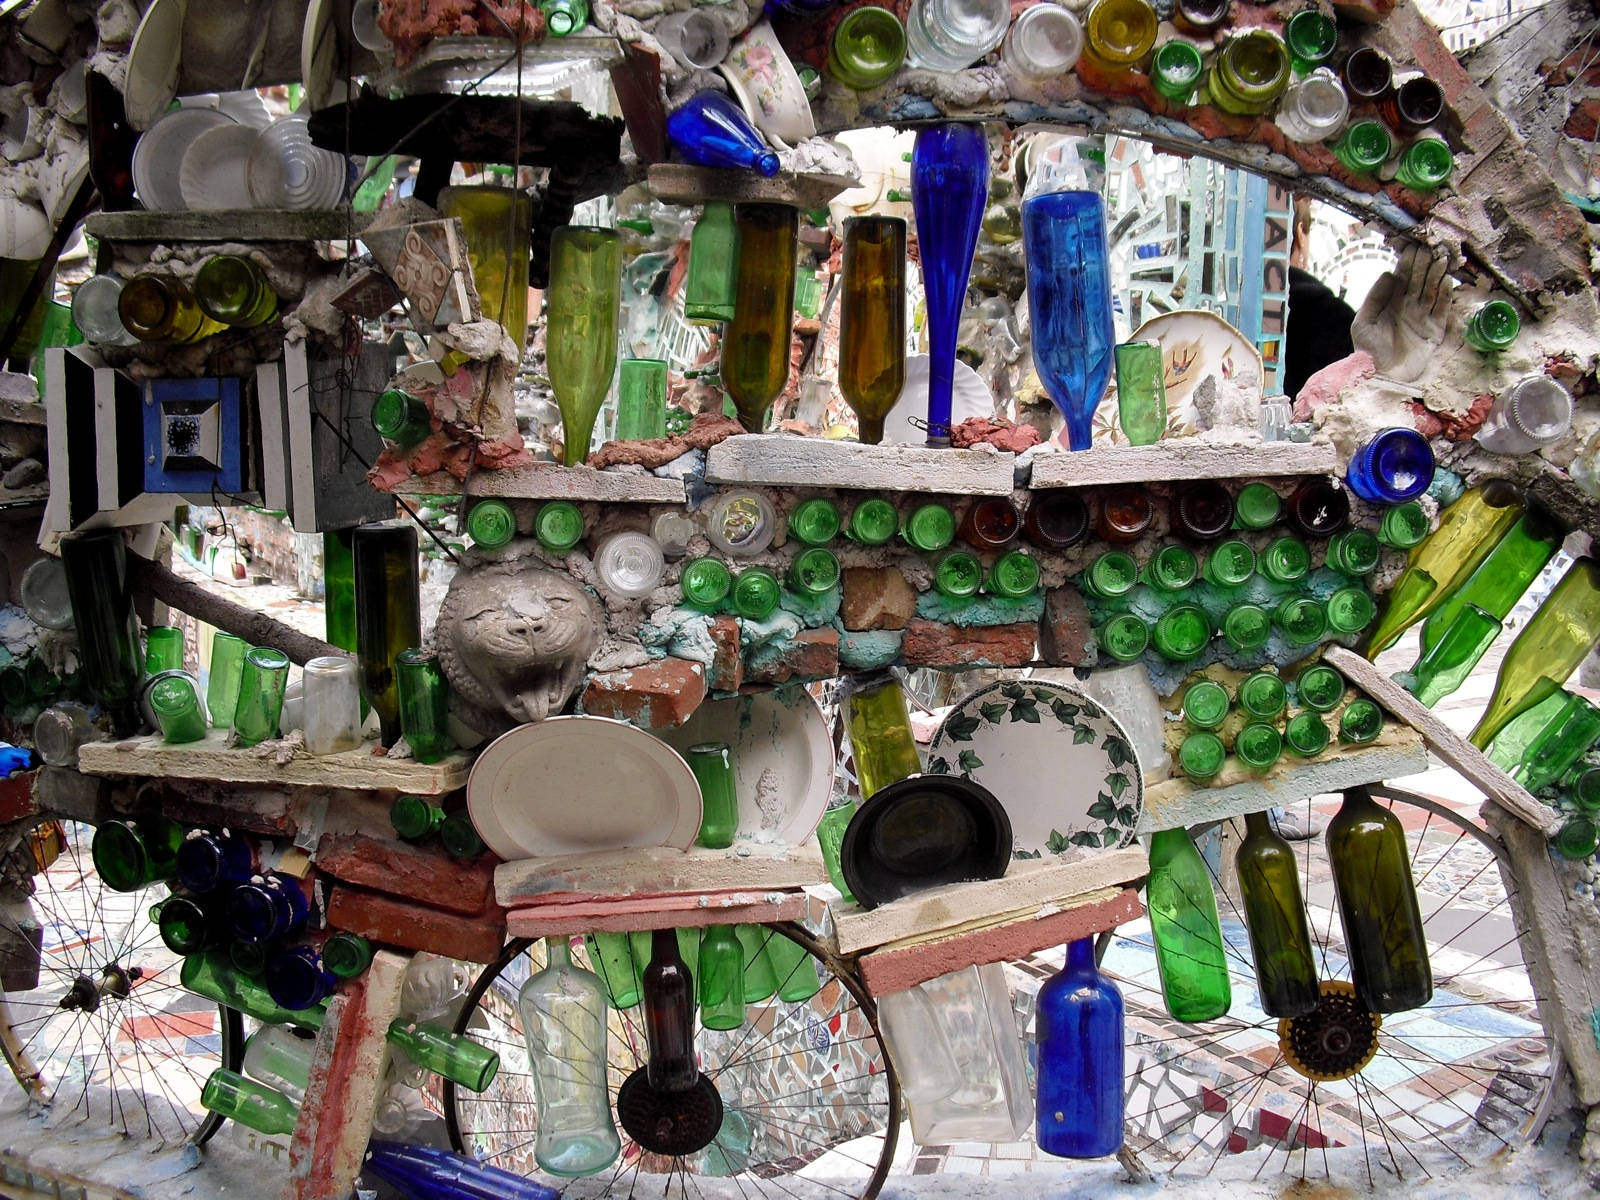 Colorful Pieces Of Plates, Bottles And Glass Objects Form A 3 D Mural In